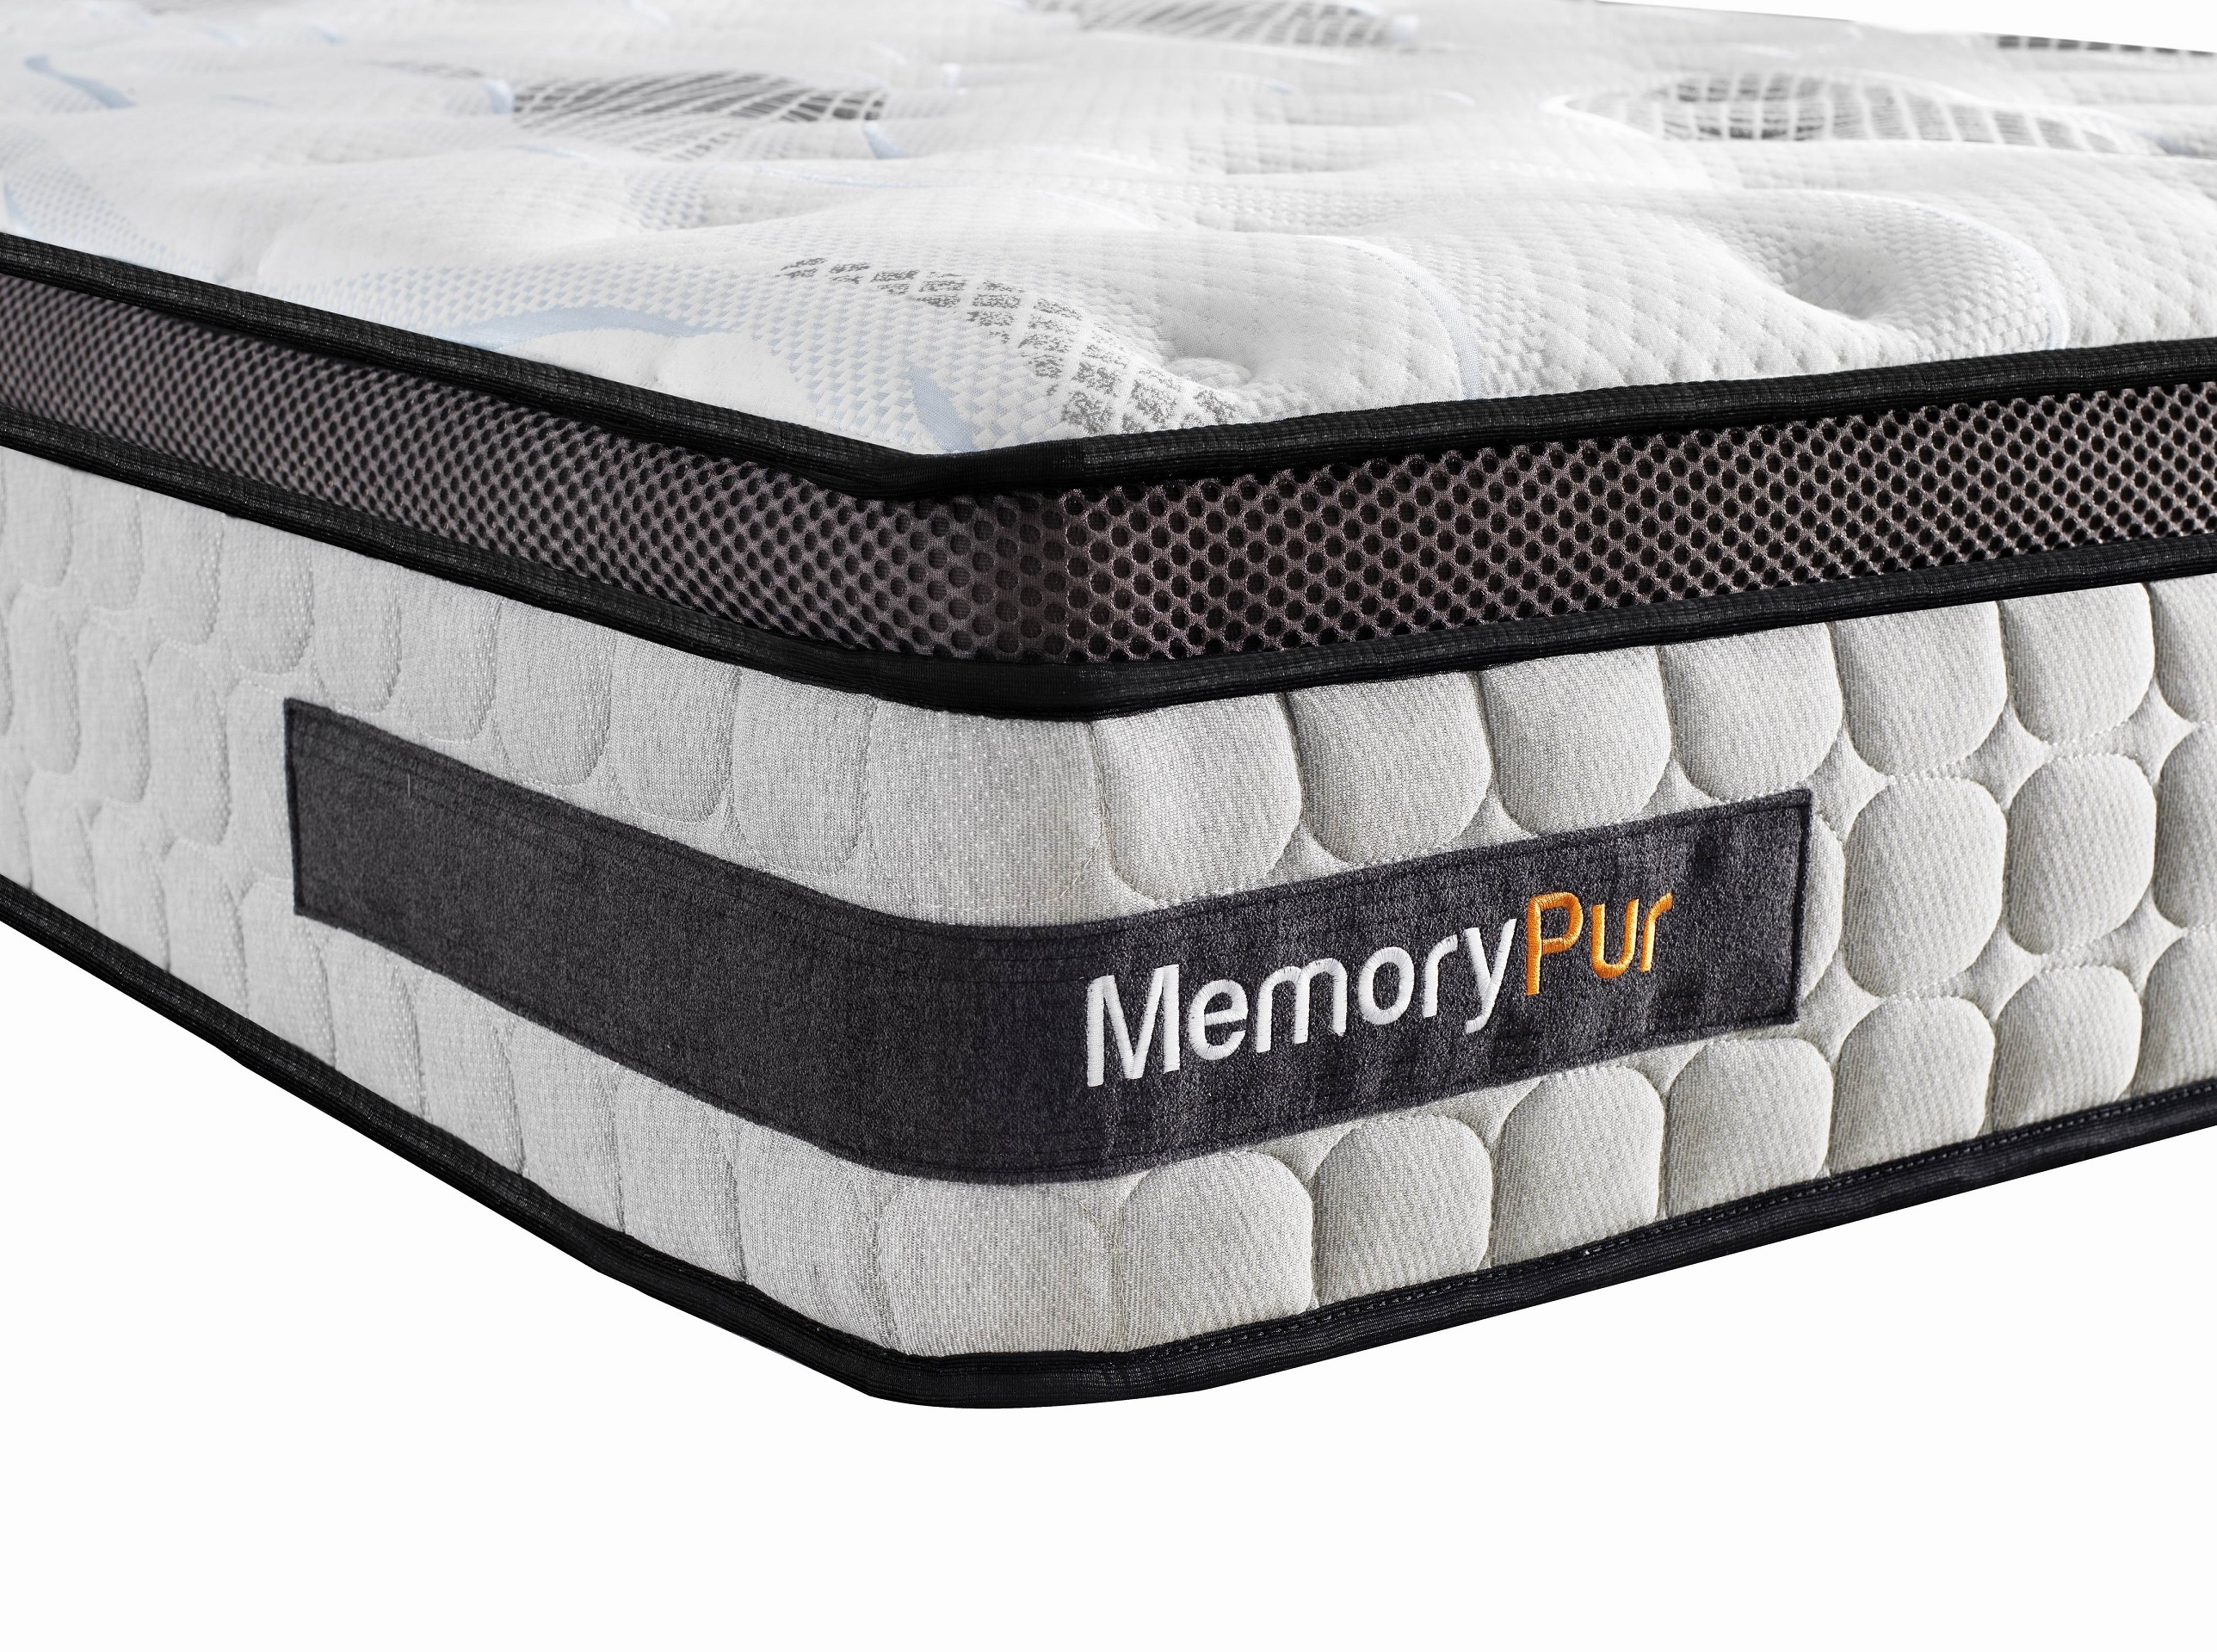 memorypur matelas ressorts sur matelas m moire de forme gel latex h32 cm perfection. Black Bedroom Furniture Sets. Home Design Ideas